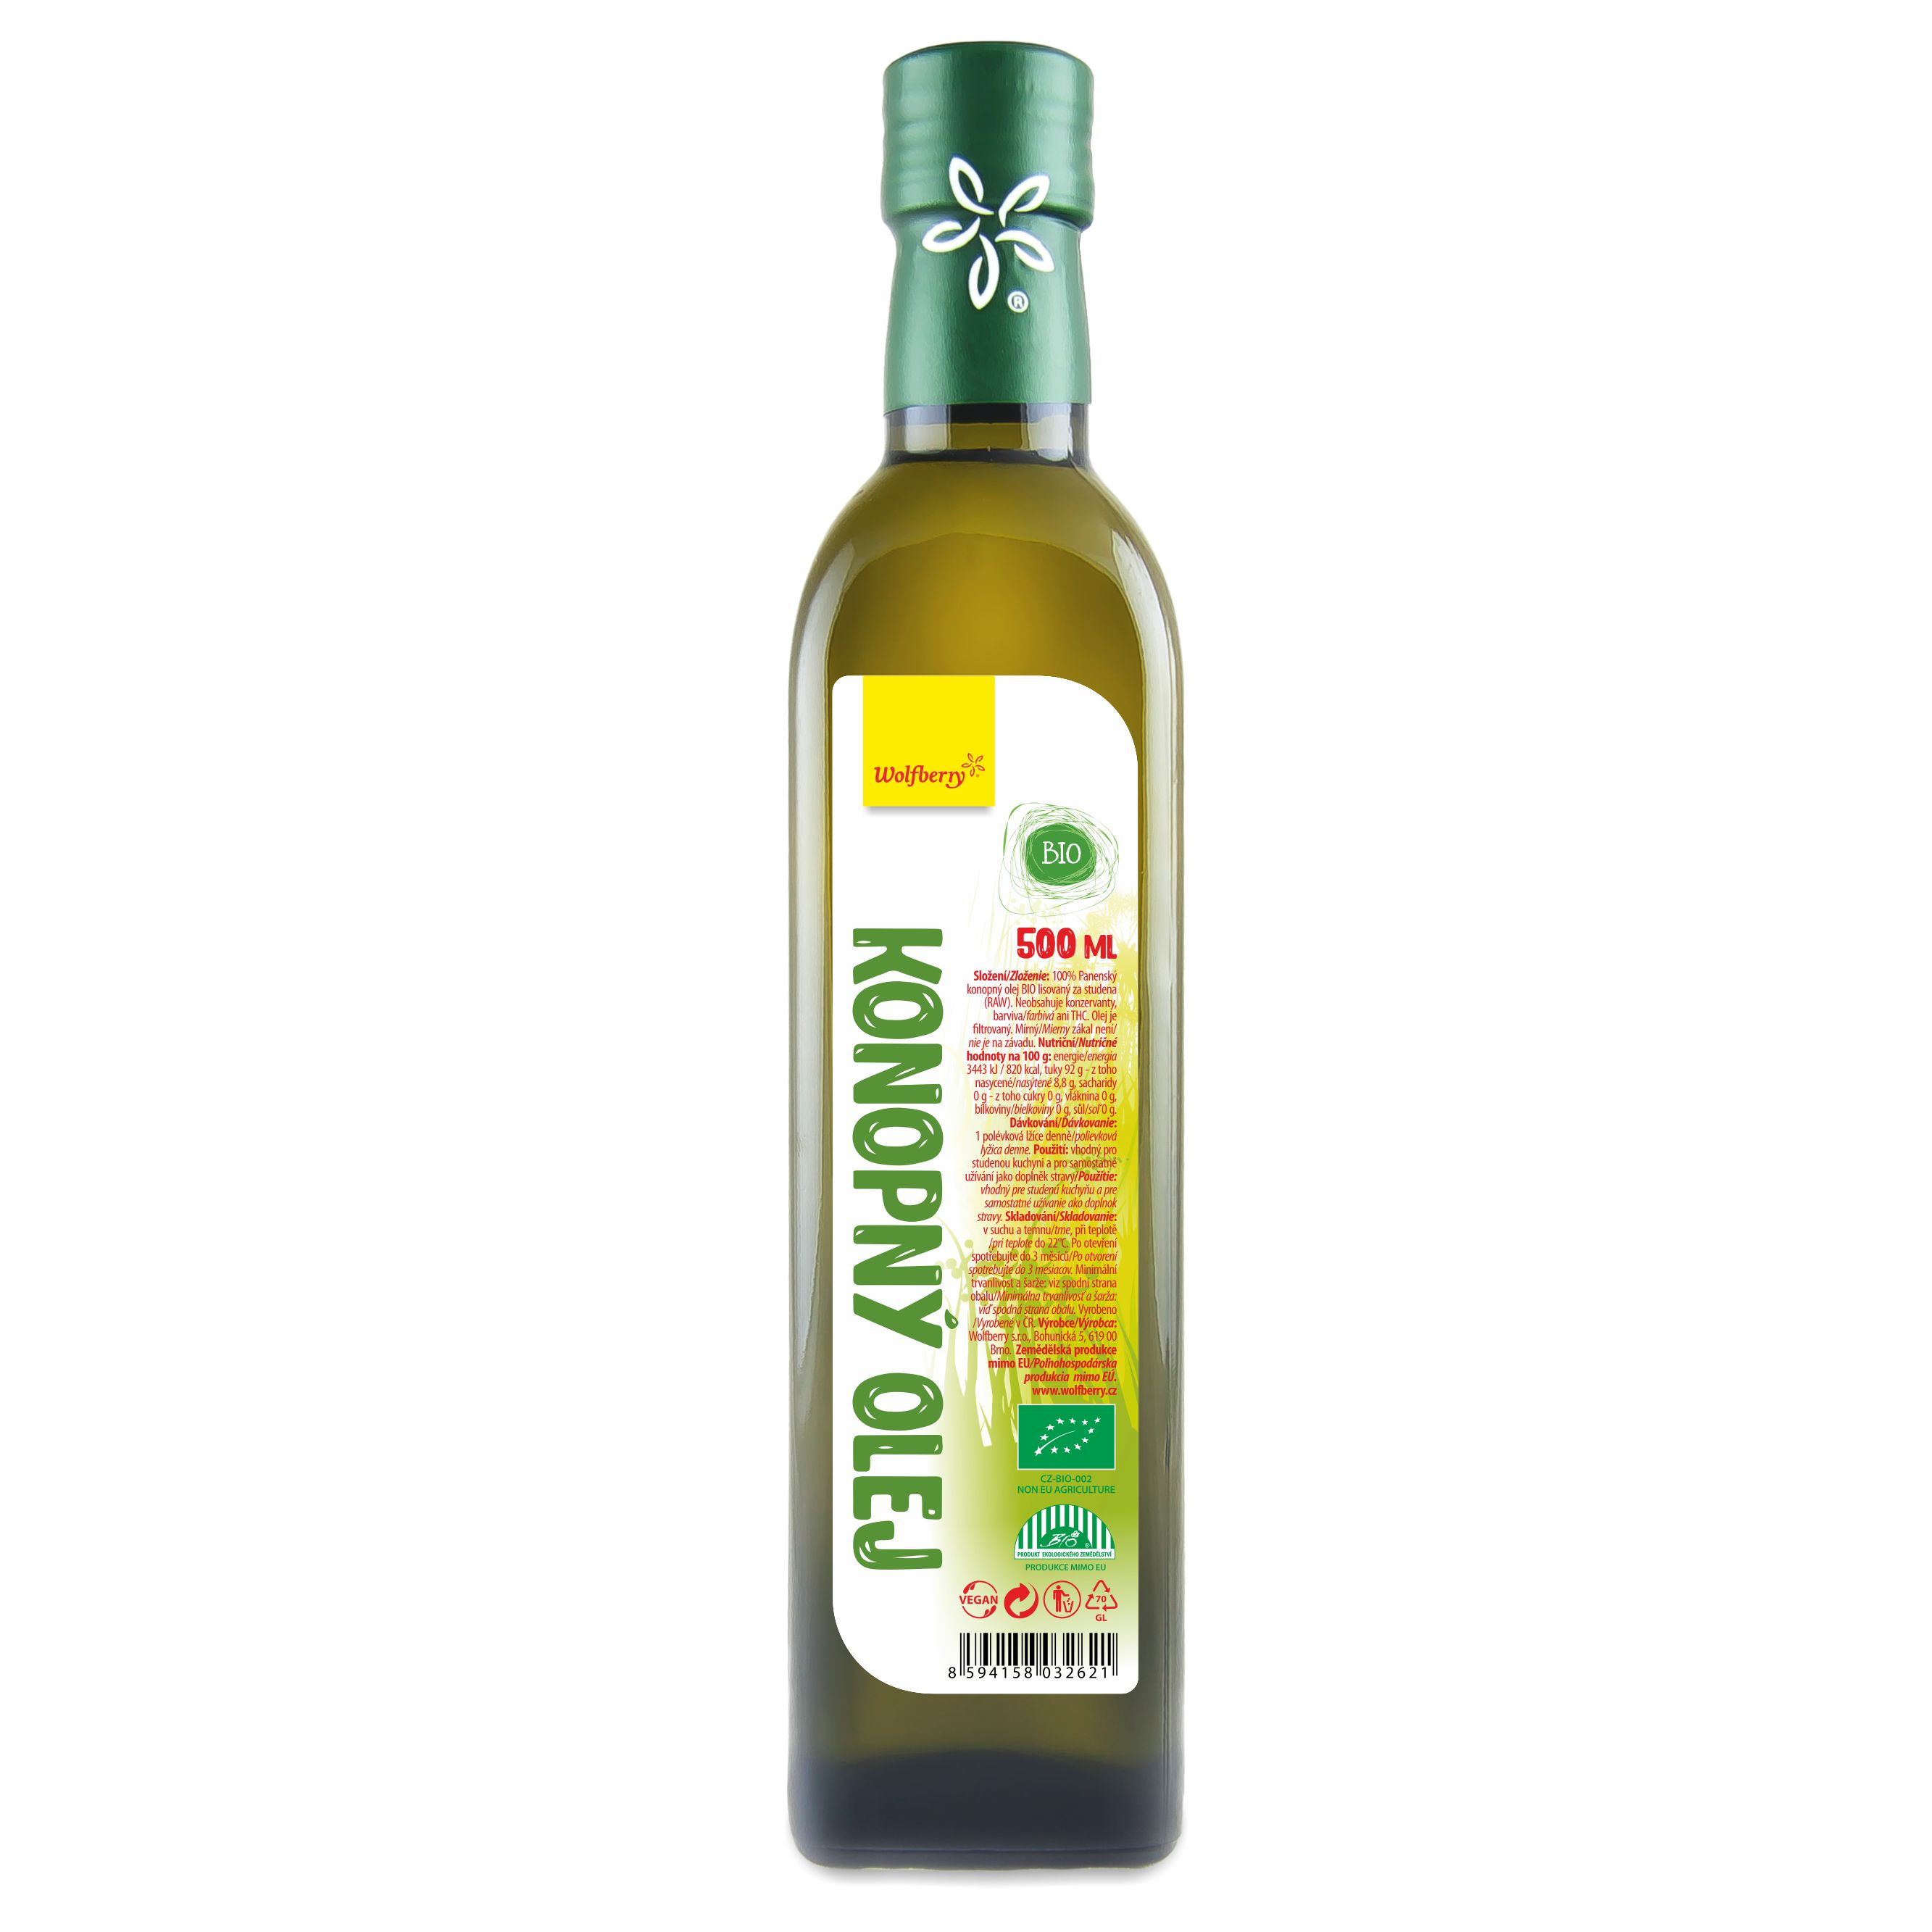 Wolfberry Konopný olej BIO 500 ml Wolfberry * 500ml